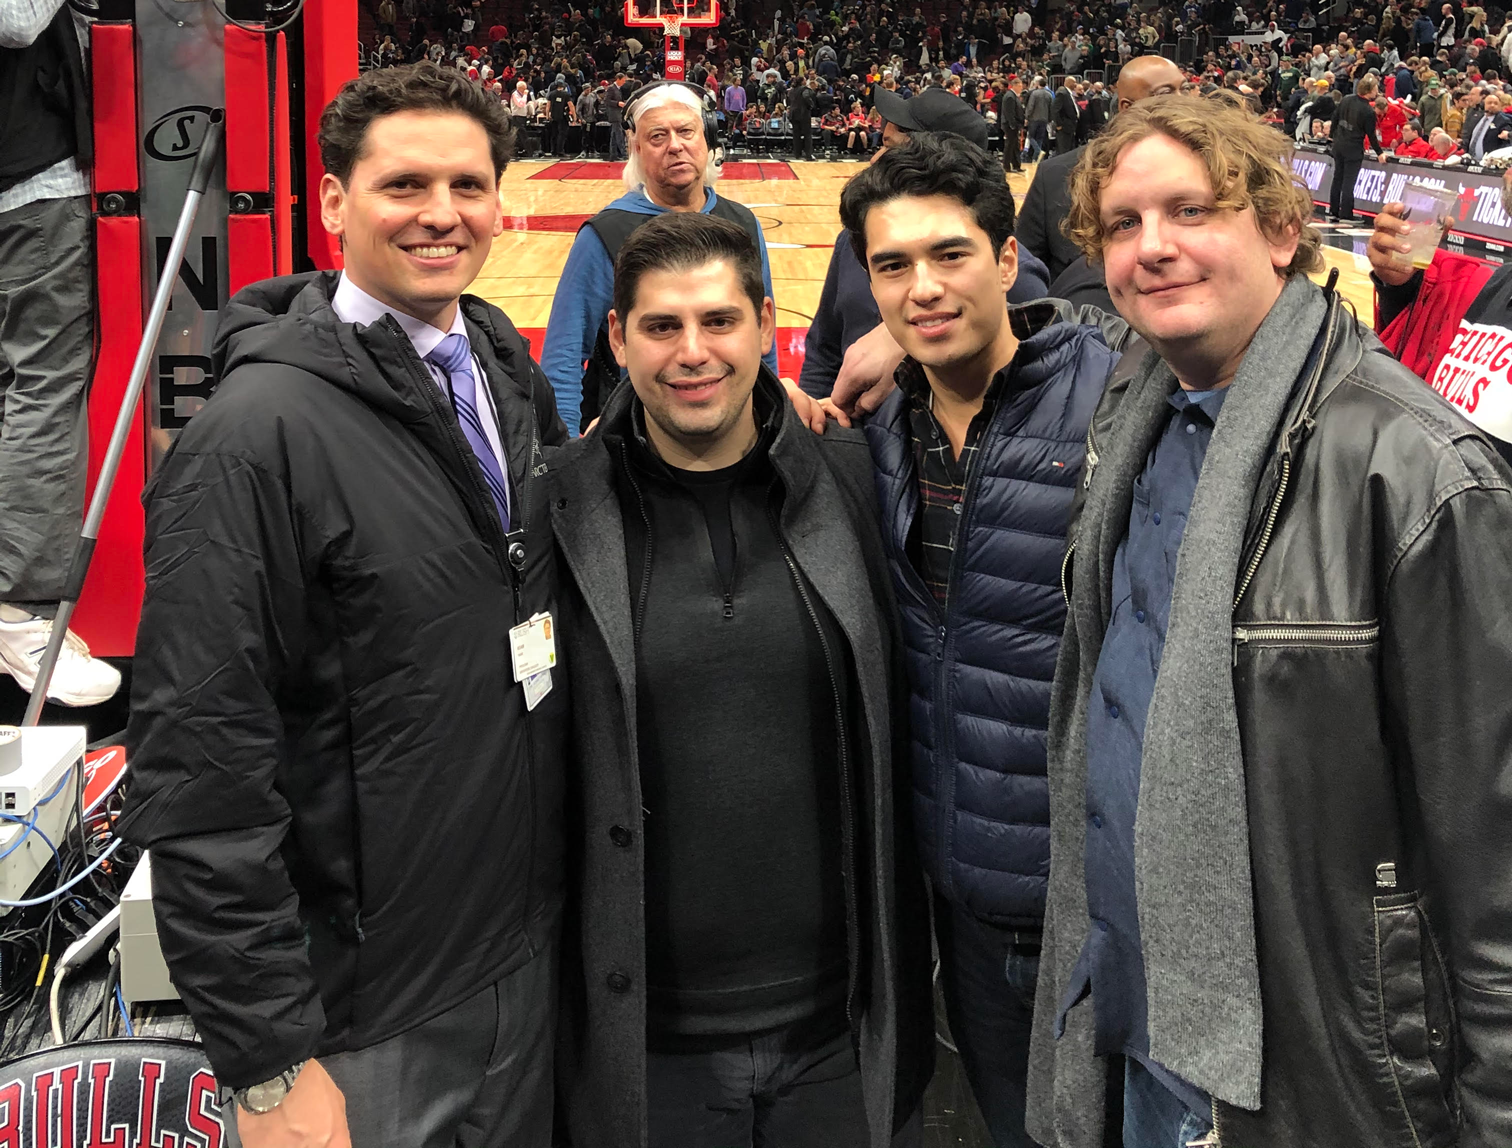 PatientIQ employees at a Chicago Bulls game